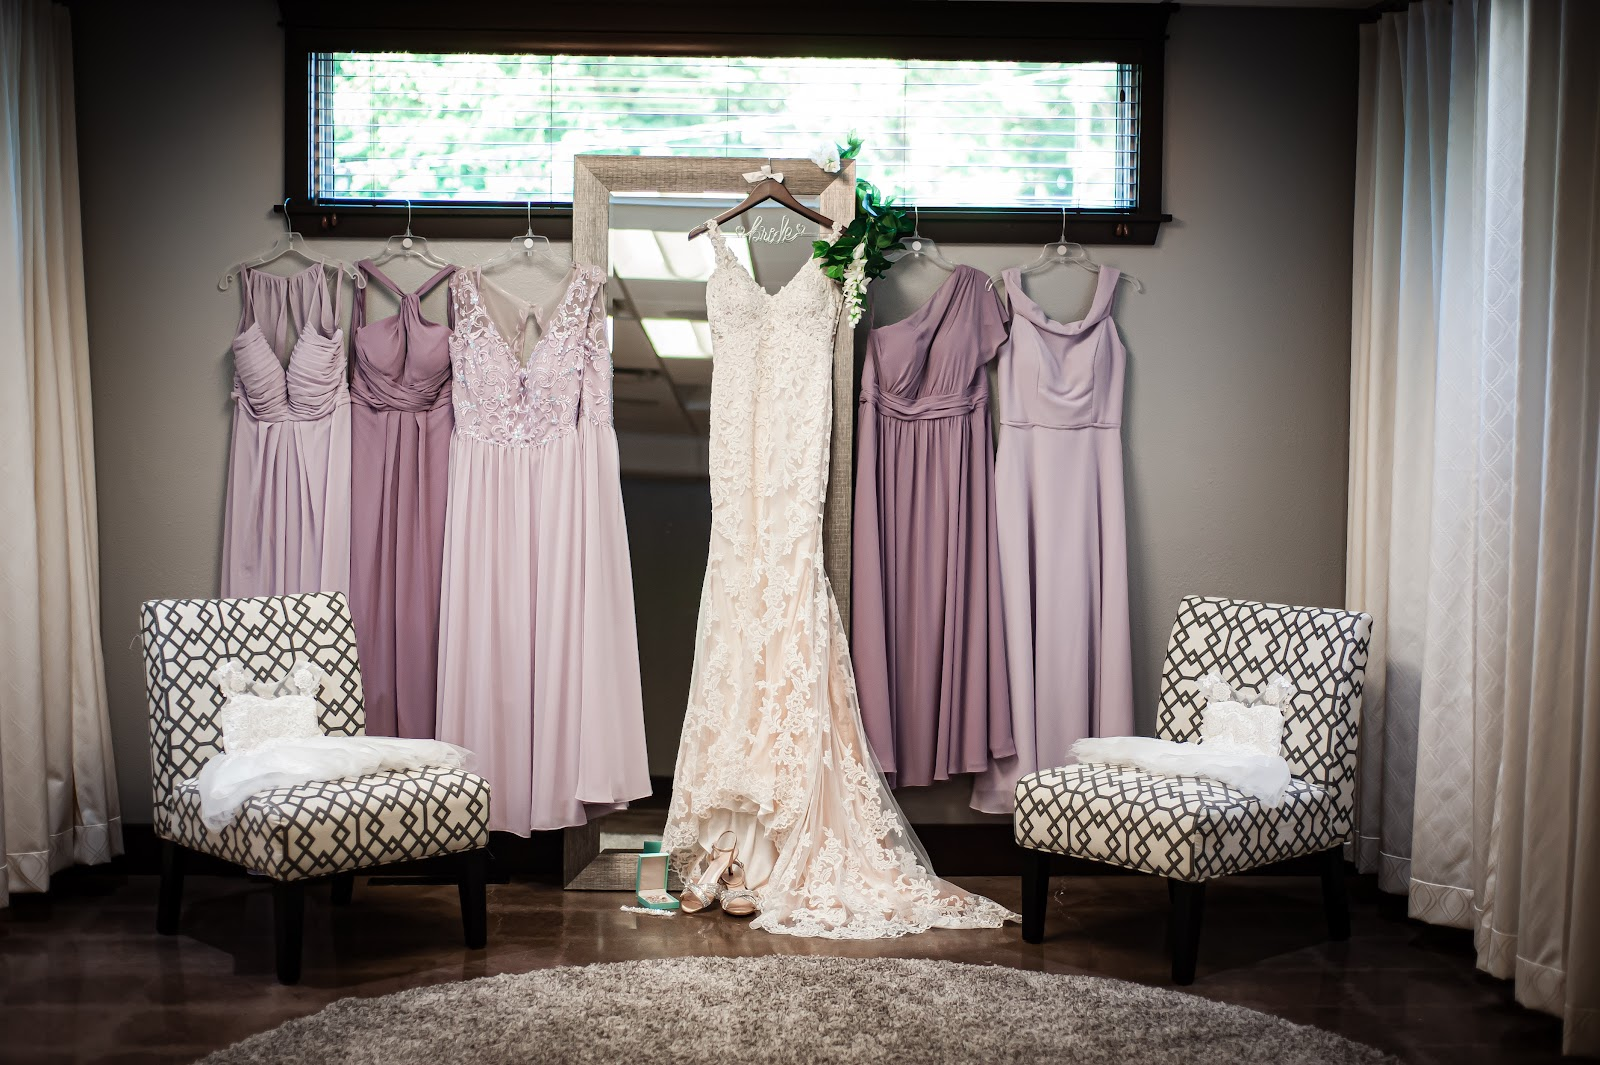 Bridal gown hanging in front of mirror with lavender bridesmaid dresses on either side.